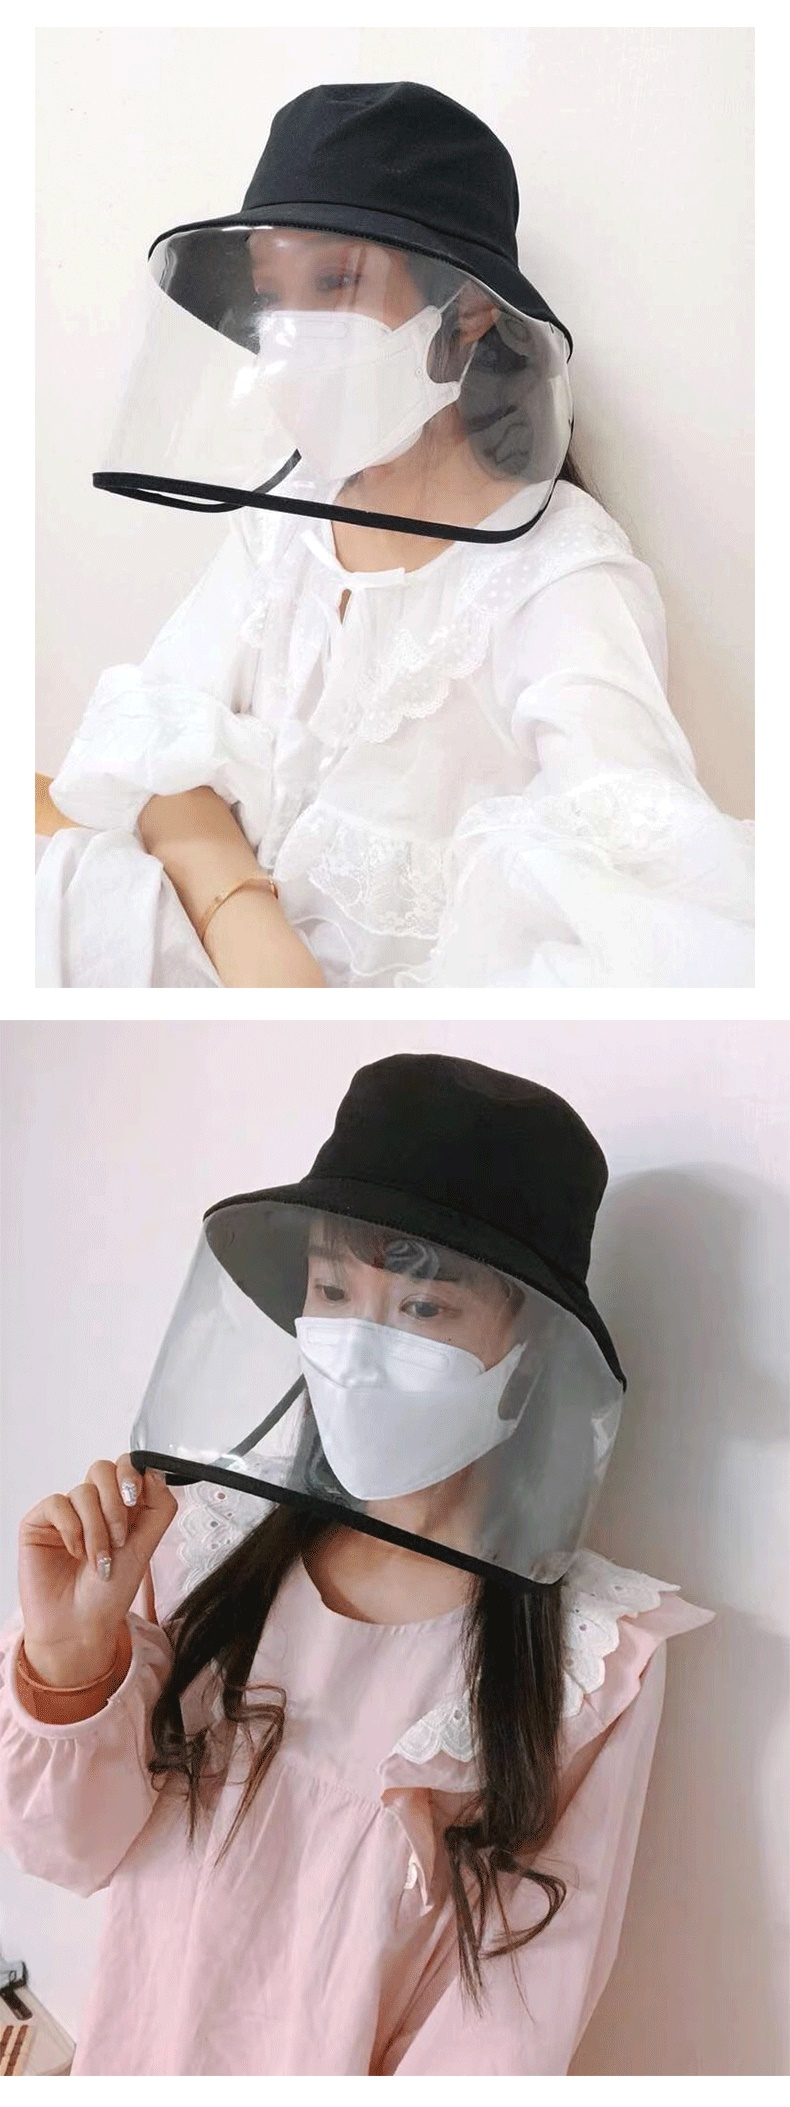 Medical Surgical Face Shield Disposable Protective Mask Factory